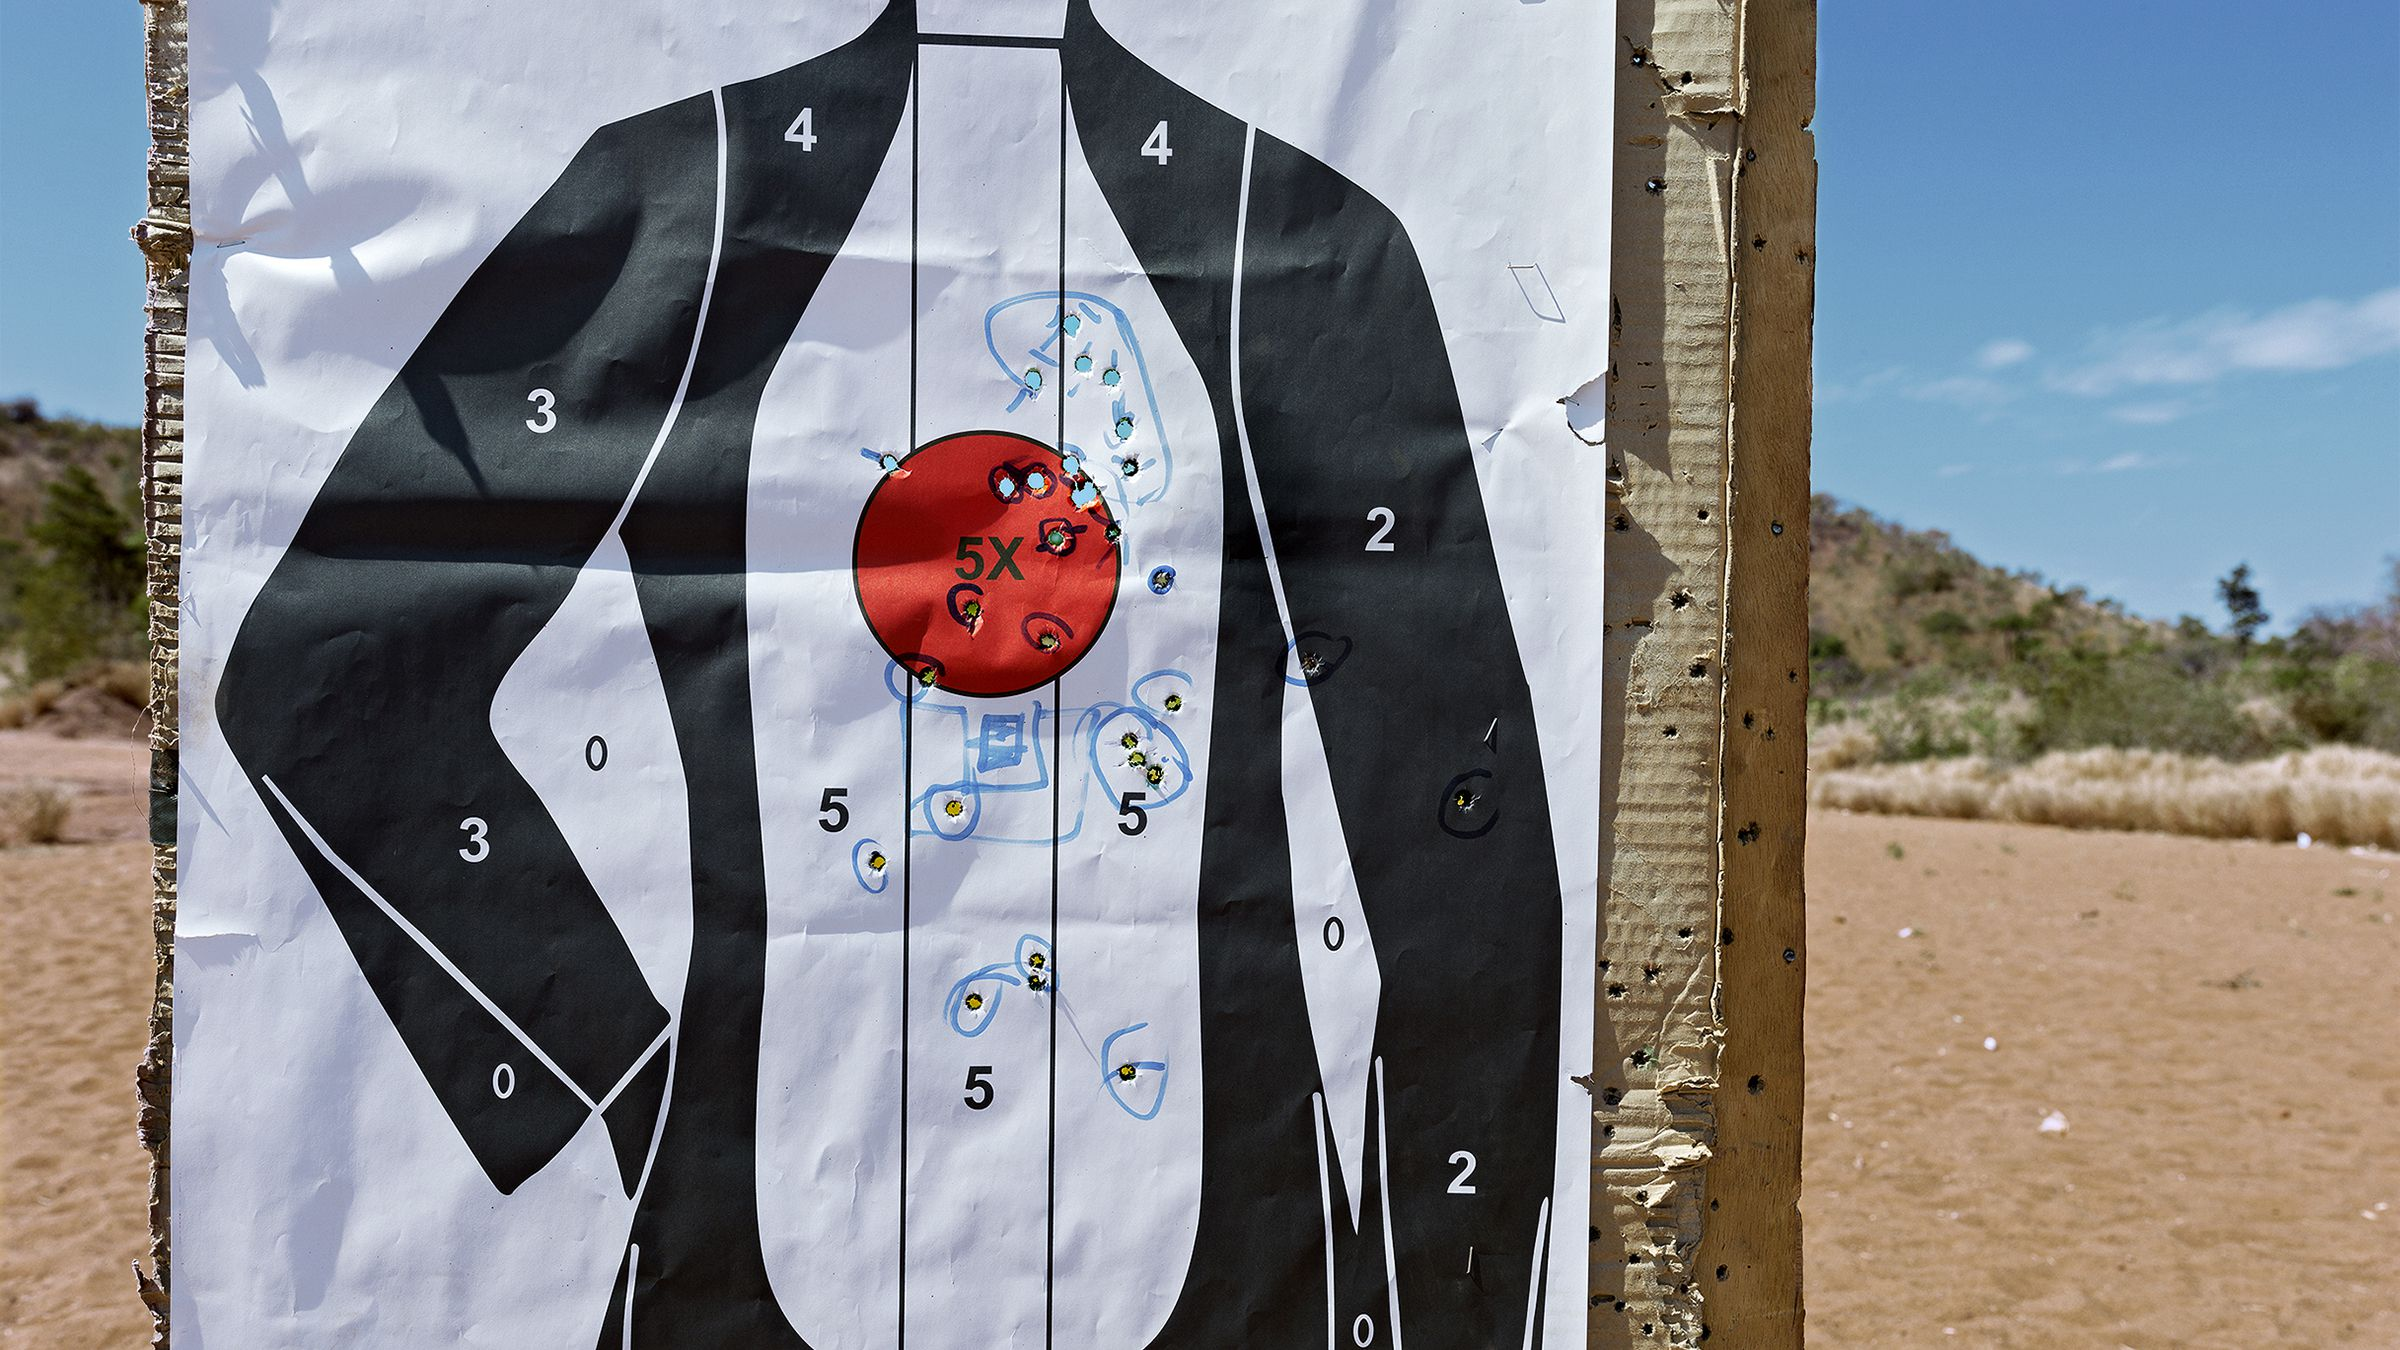 A target used by Mali's military for shooting practice